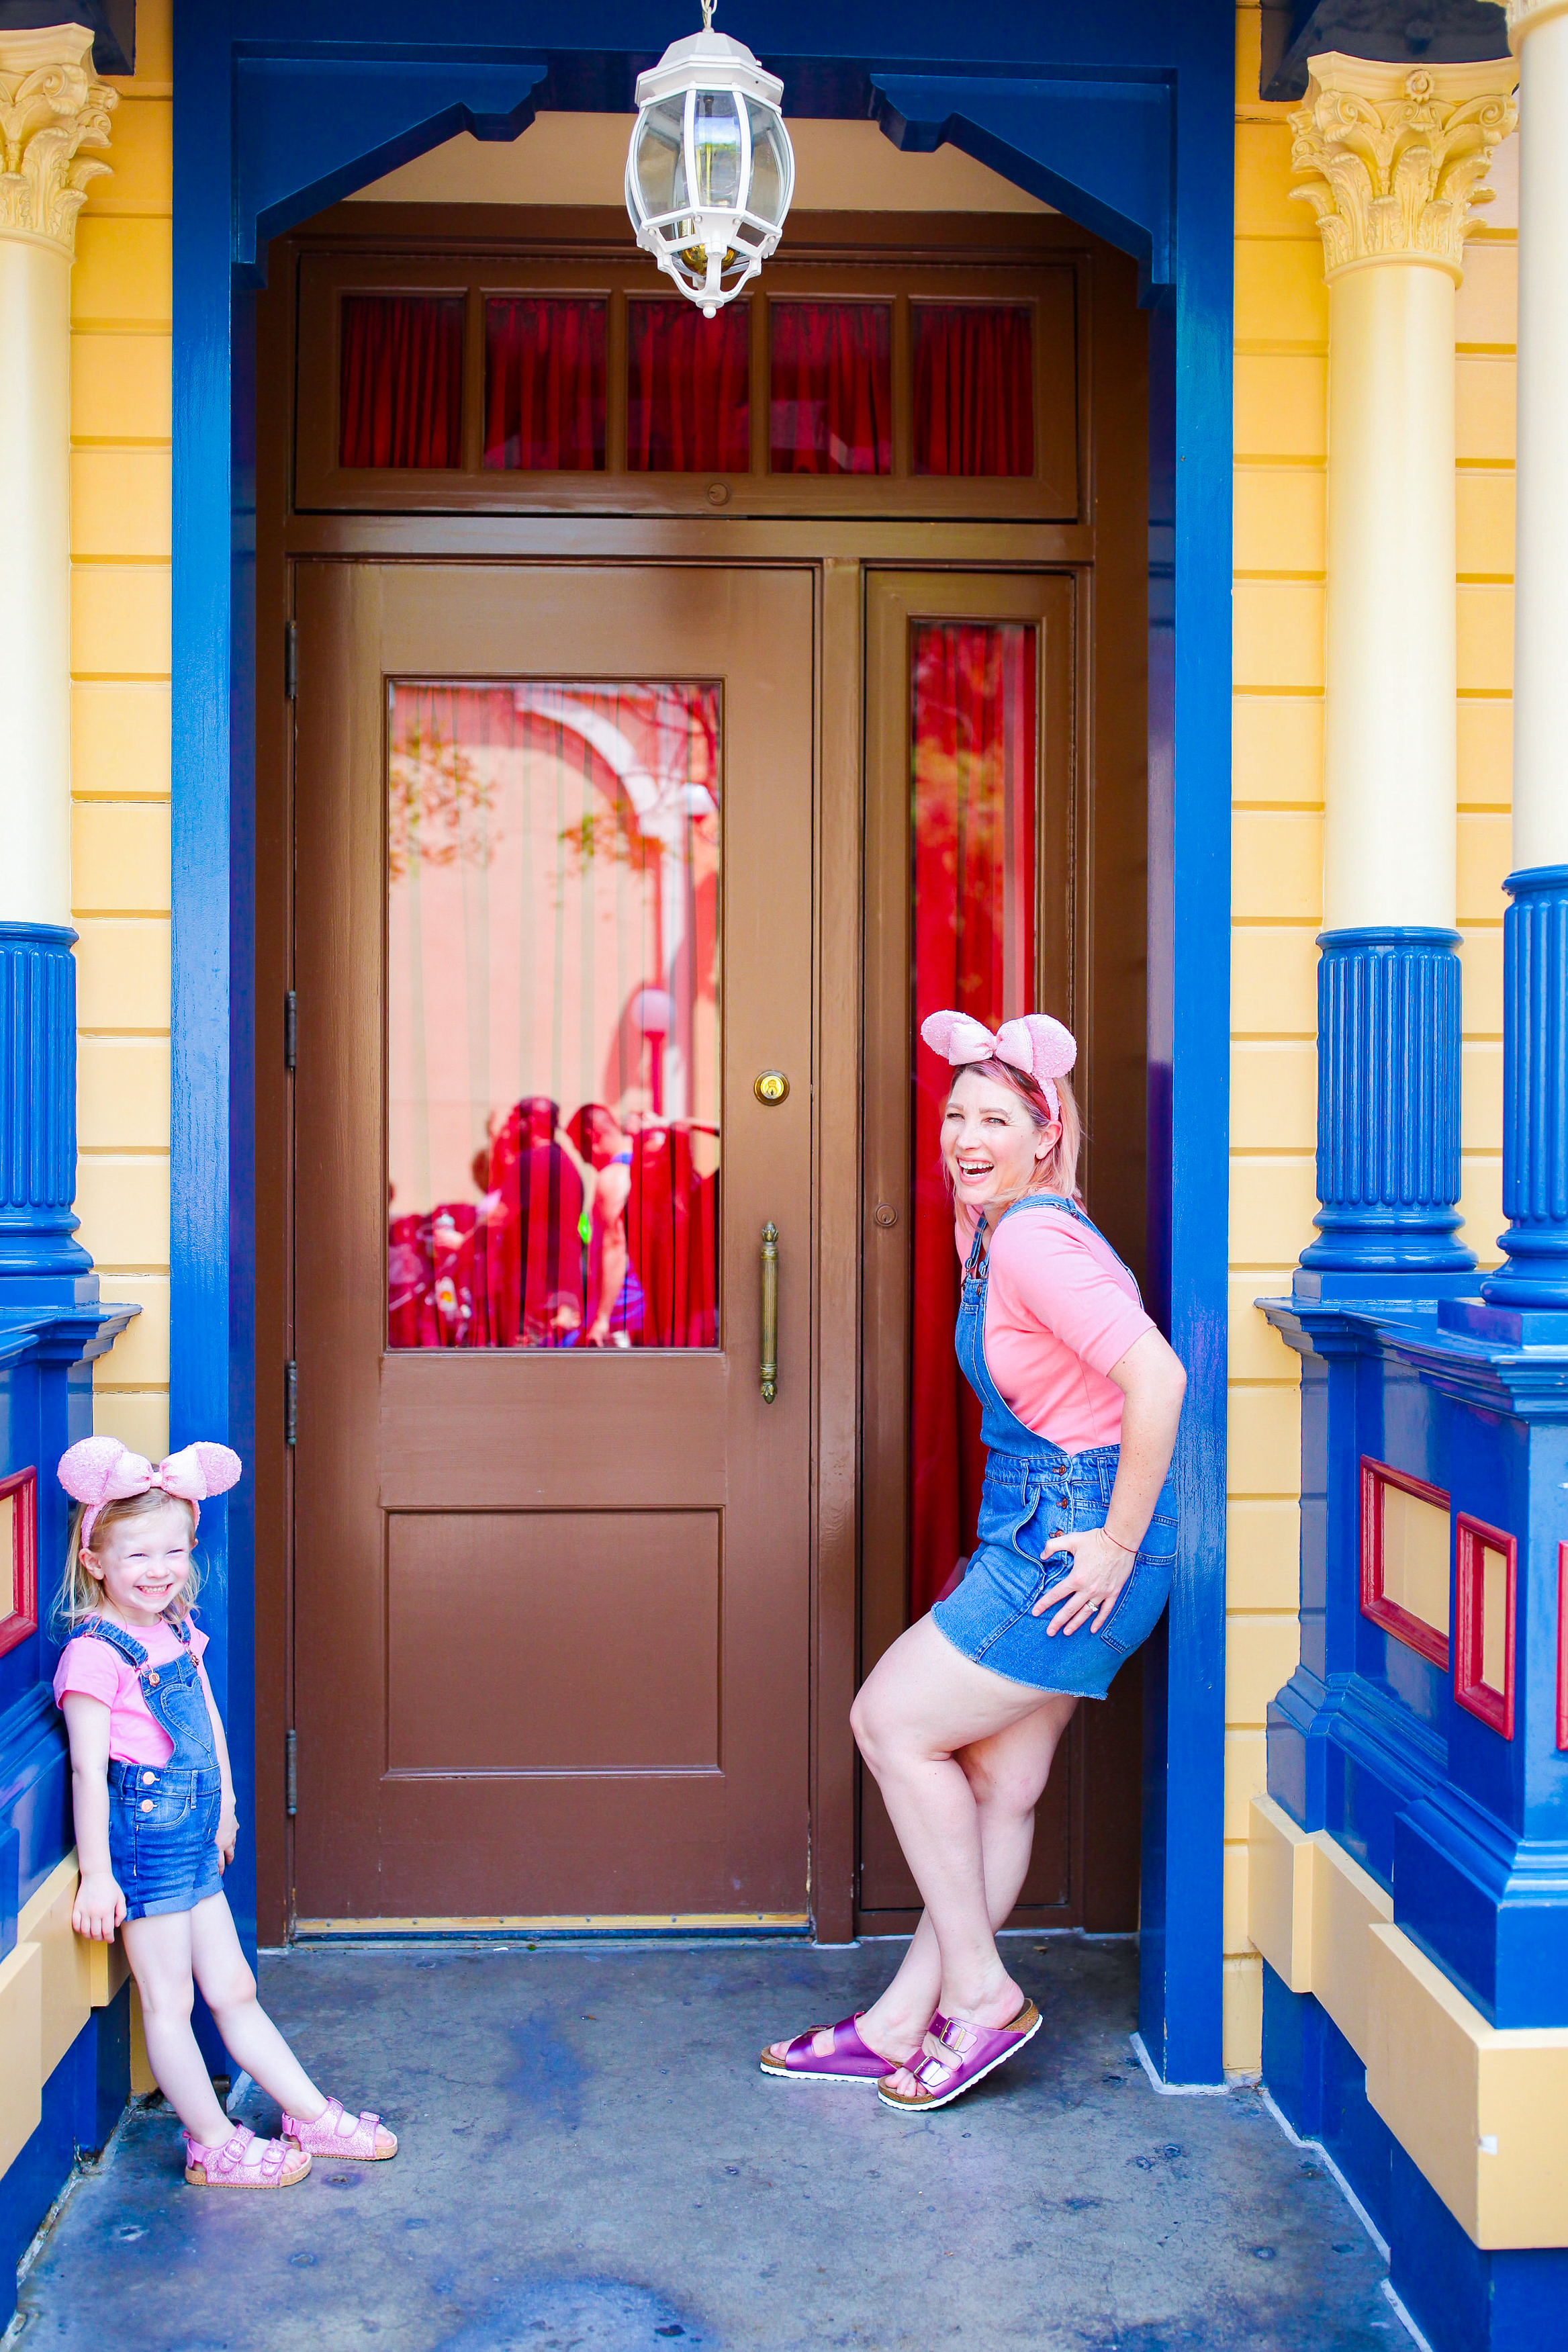 Those Millenial Pink Ears and short overalls are PERFECT Disneyland outfits pieces!